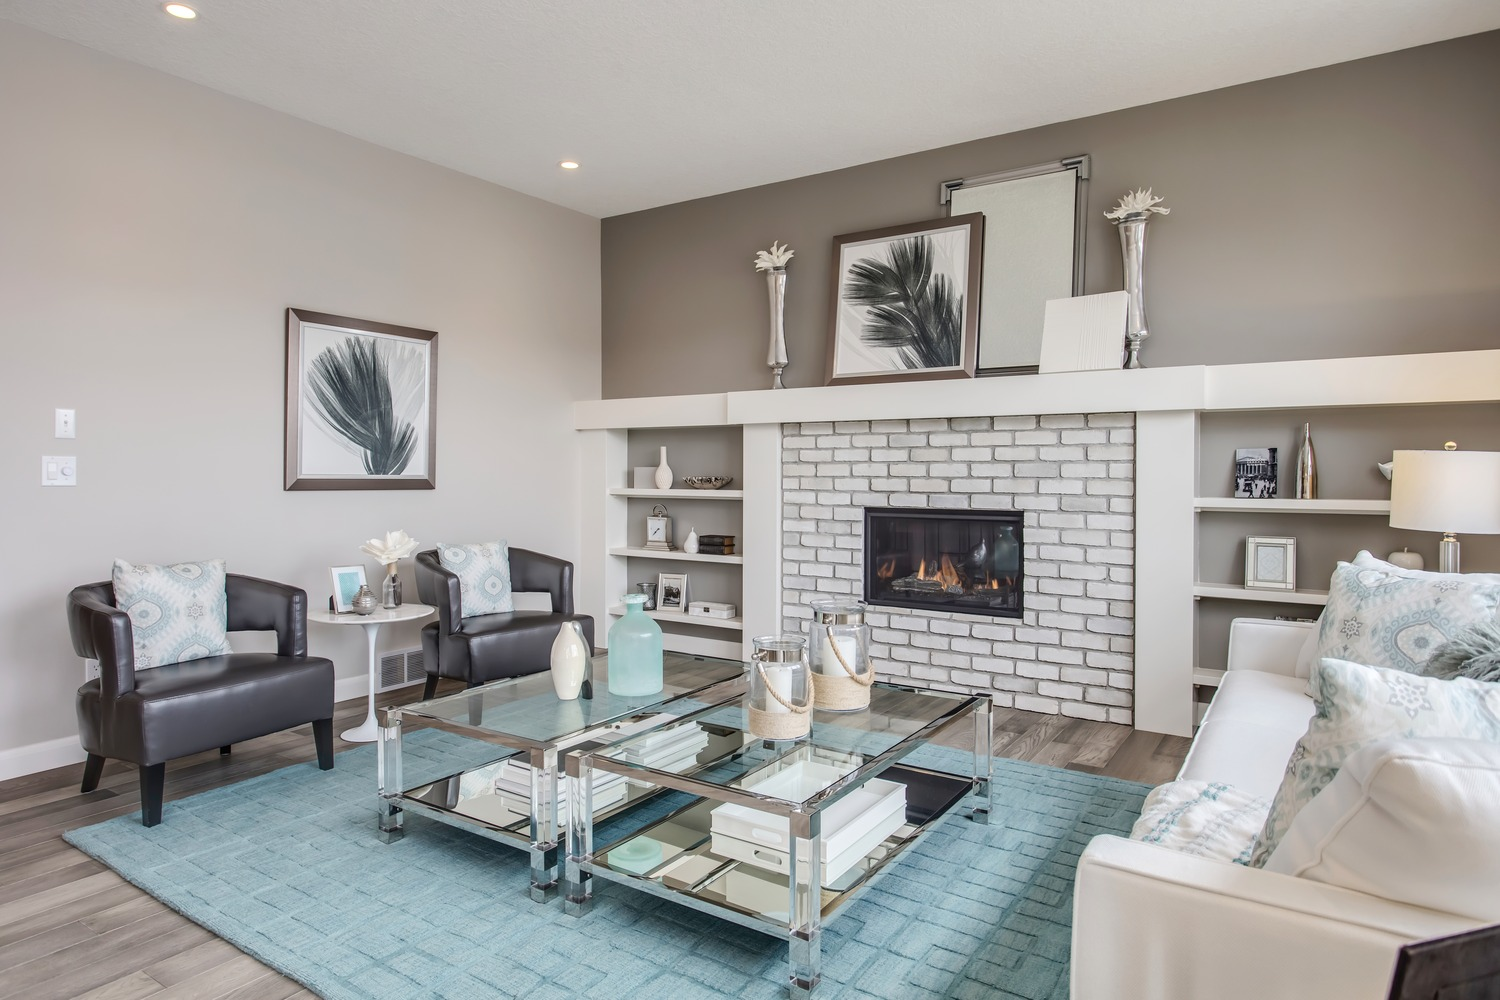 White Brick Fireplace With Shelves - Ecostone Products